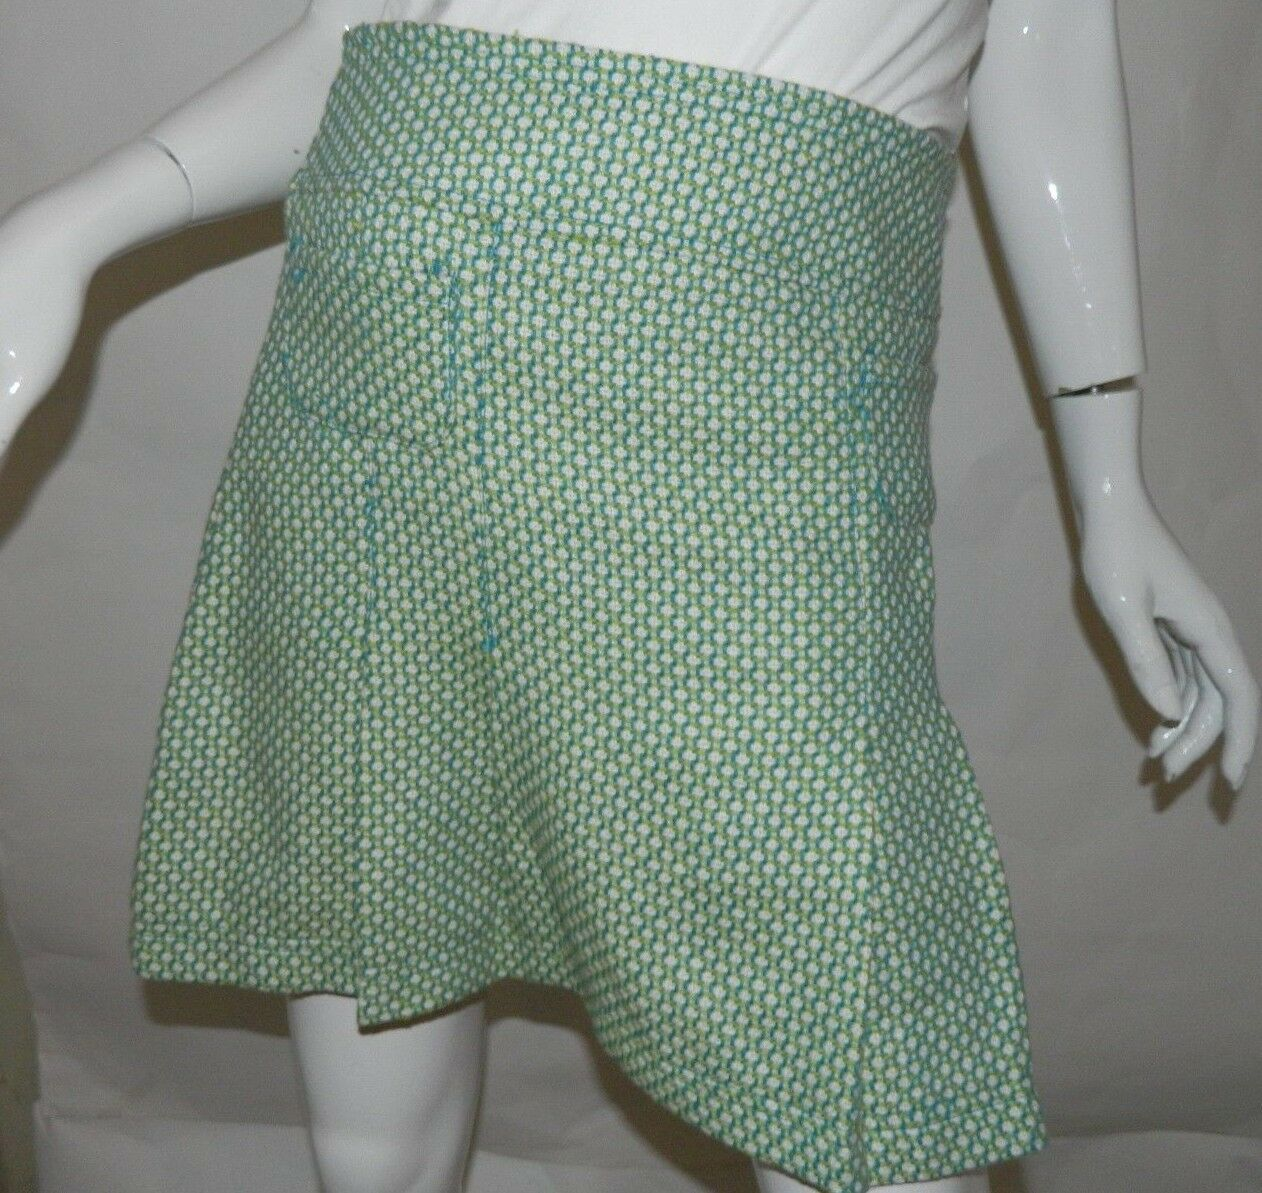 NWT Anthropologie Tulle Skirt Green and White Tweed  A-Line Skirt Size Medium